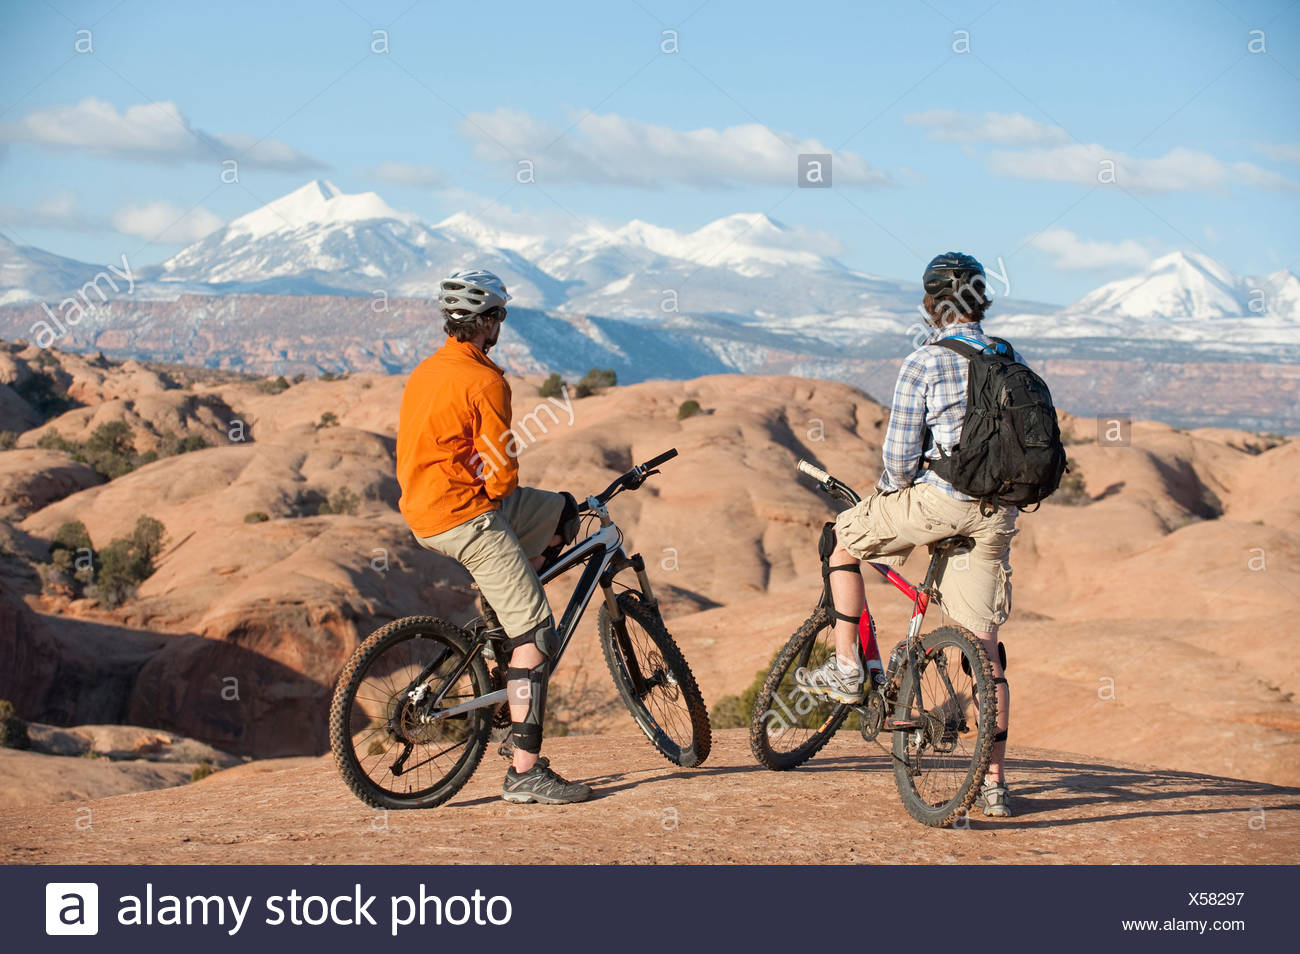 Two young men enjoy the view during a mountain bike trip on the Slickrock Trail, Moab, UT. - Stock Image